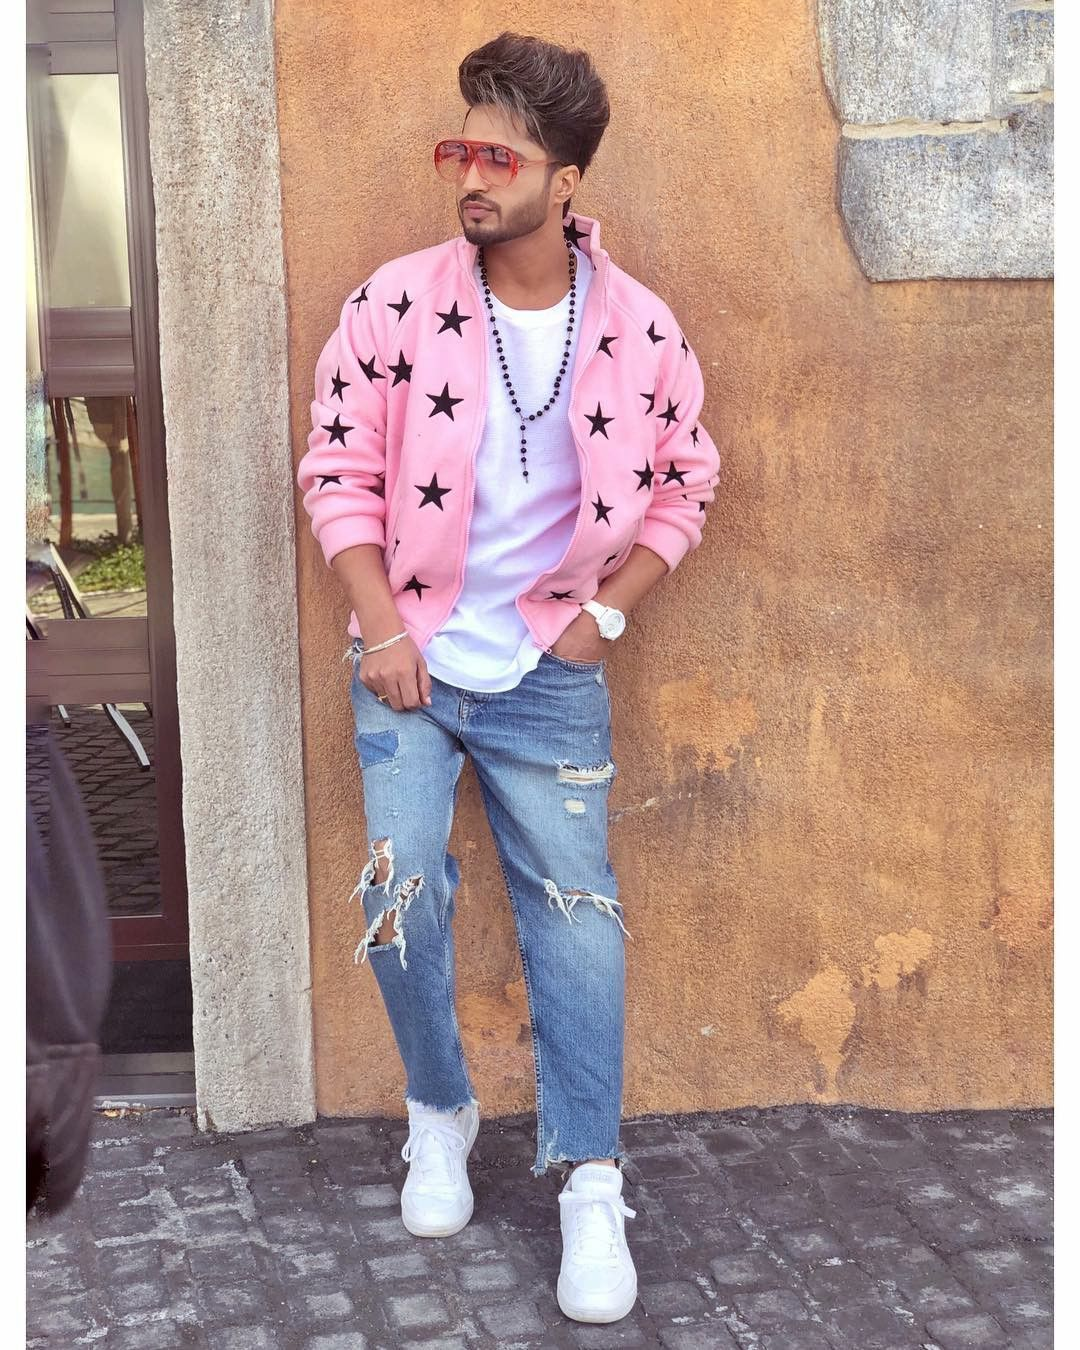 Pin by Archna3351 on Jassie Gill in 2020 | Jassi gill ...